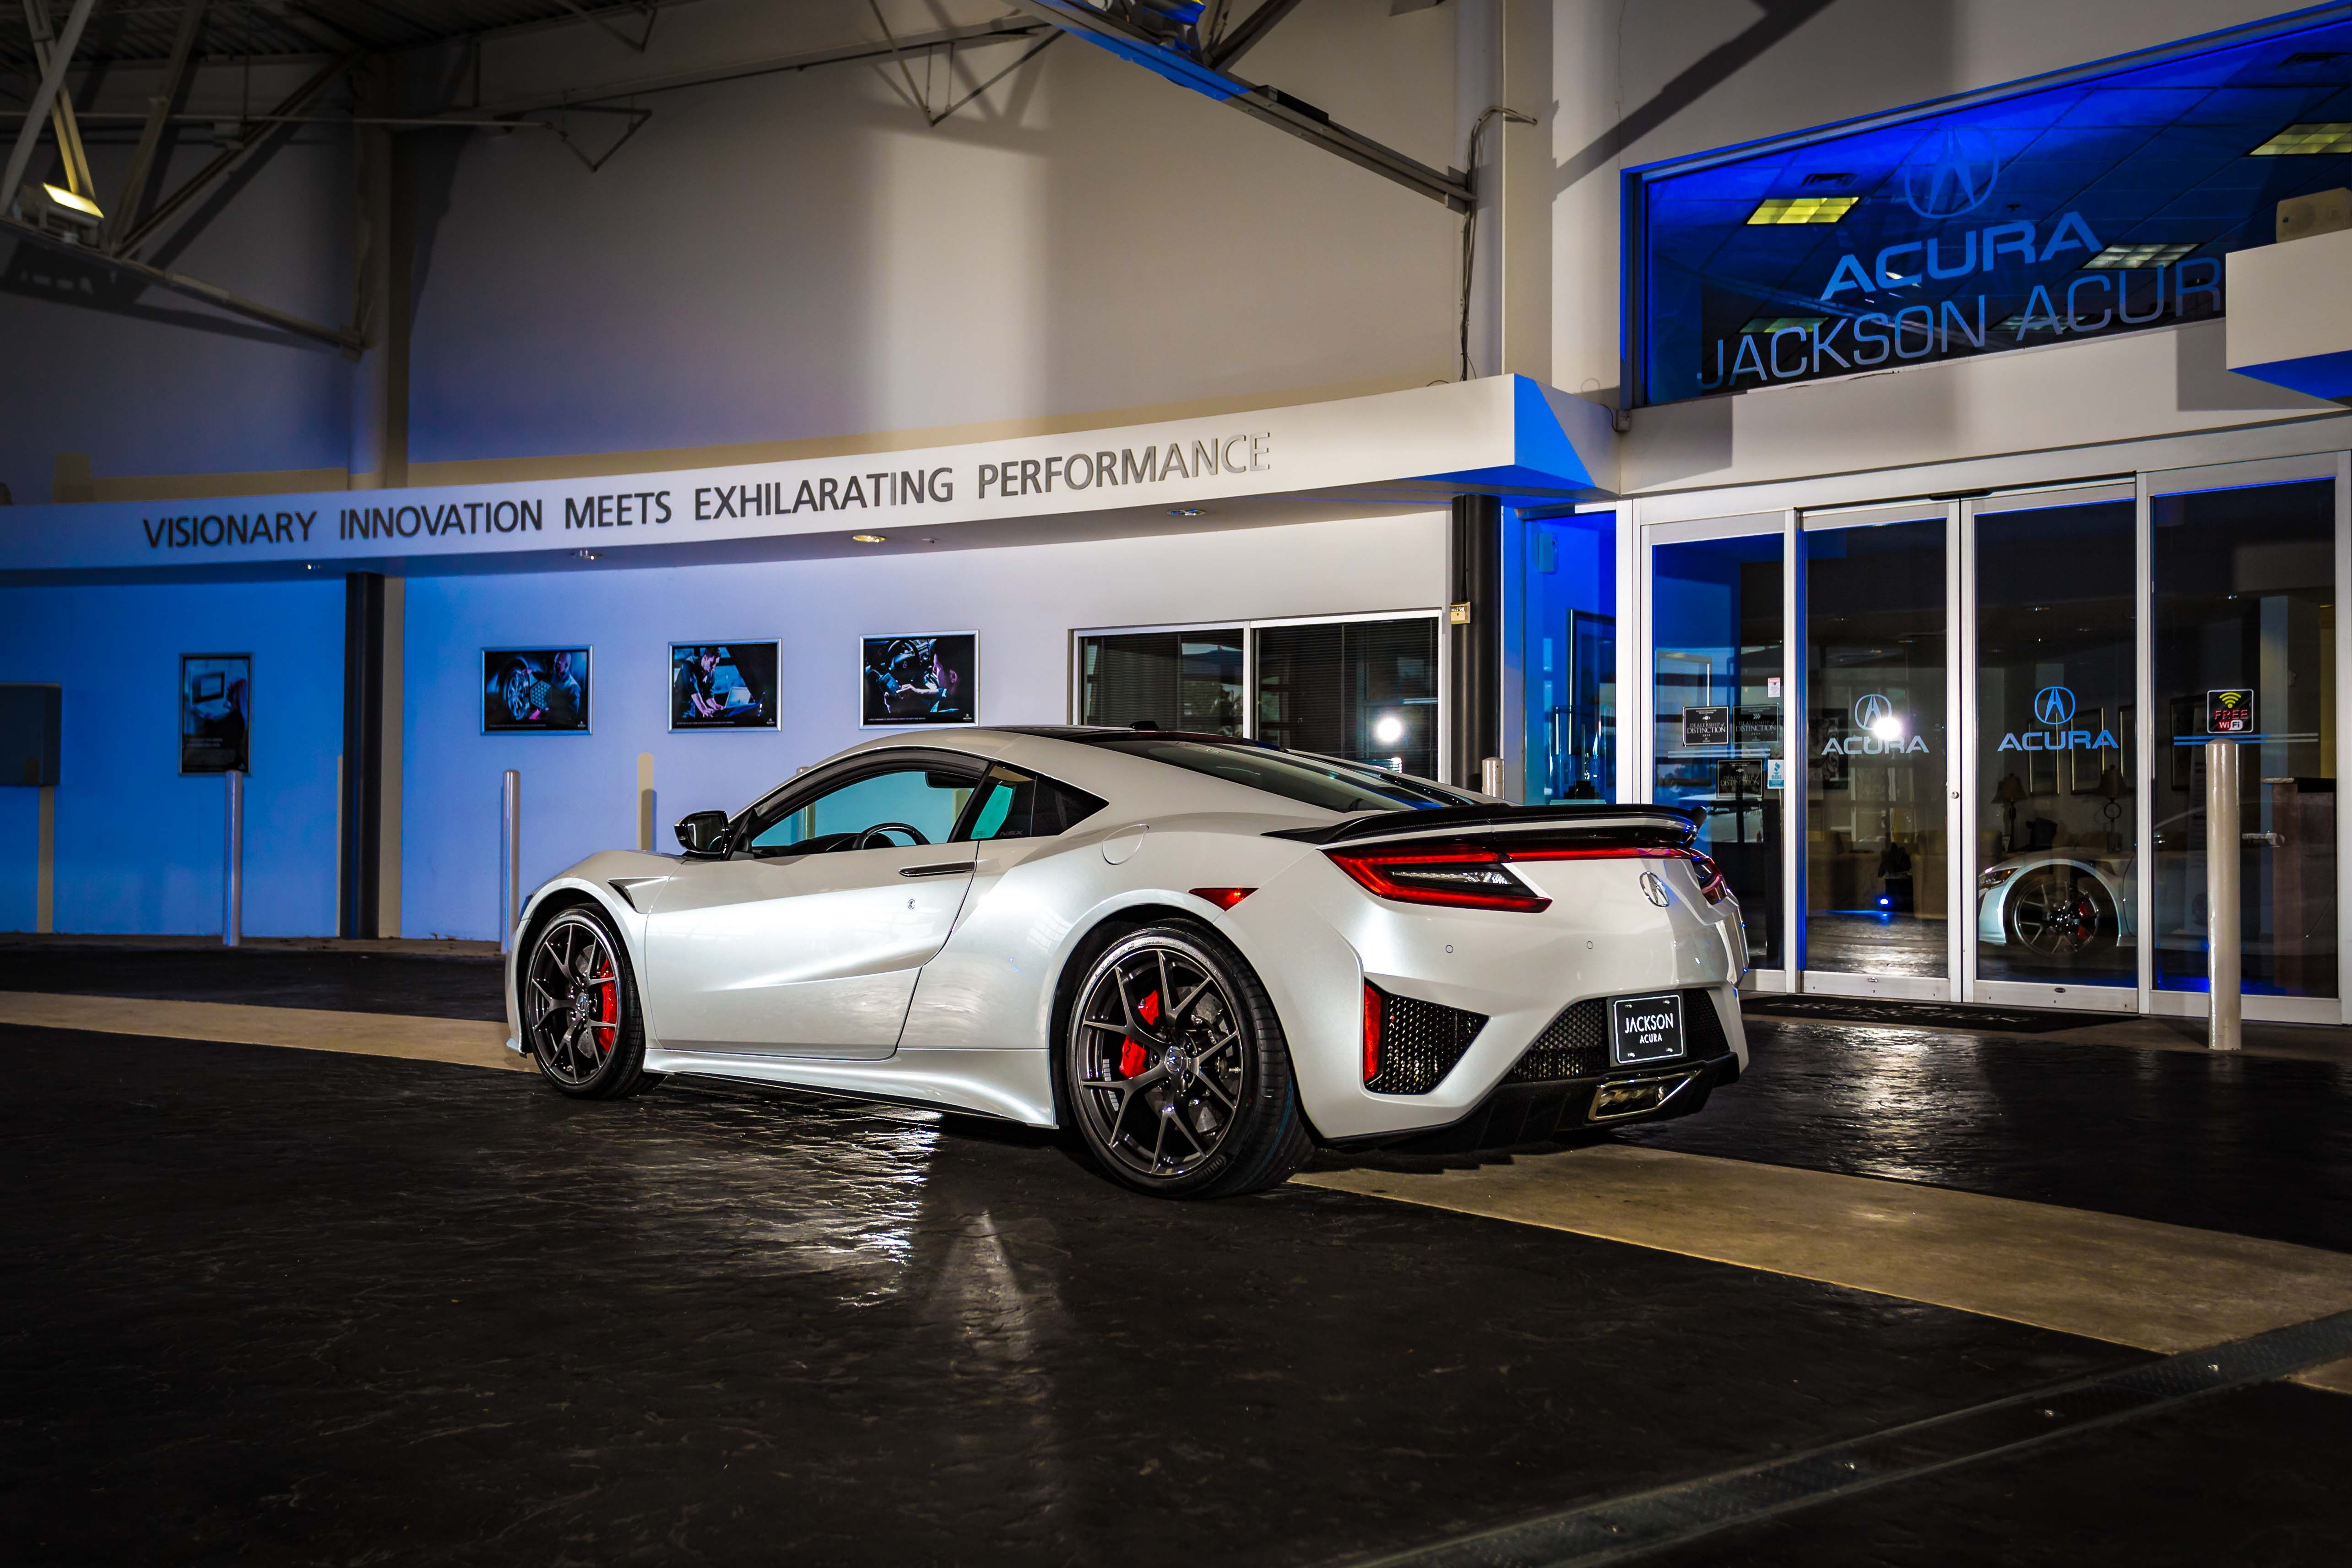 Jackson Acura S 2017 Nsx 759 Made Just For You Acura Used Luxury Cars 2017 Nsx